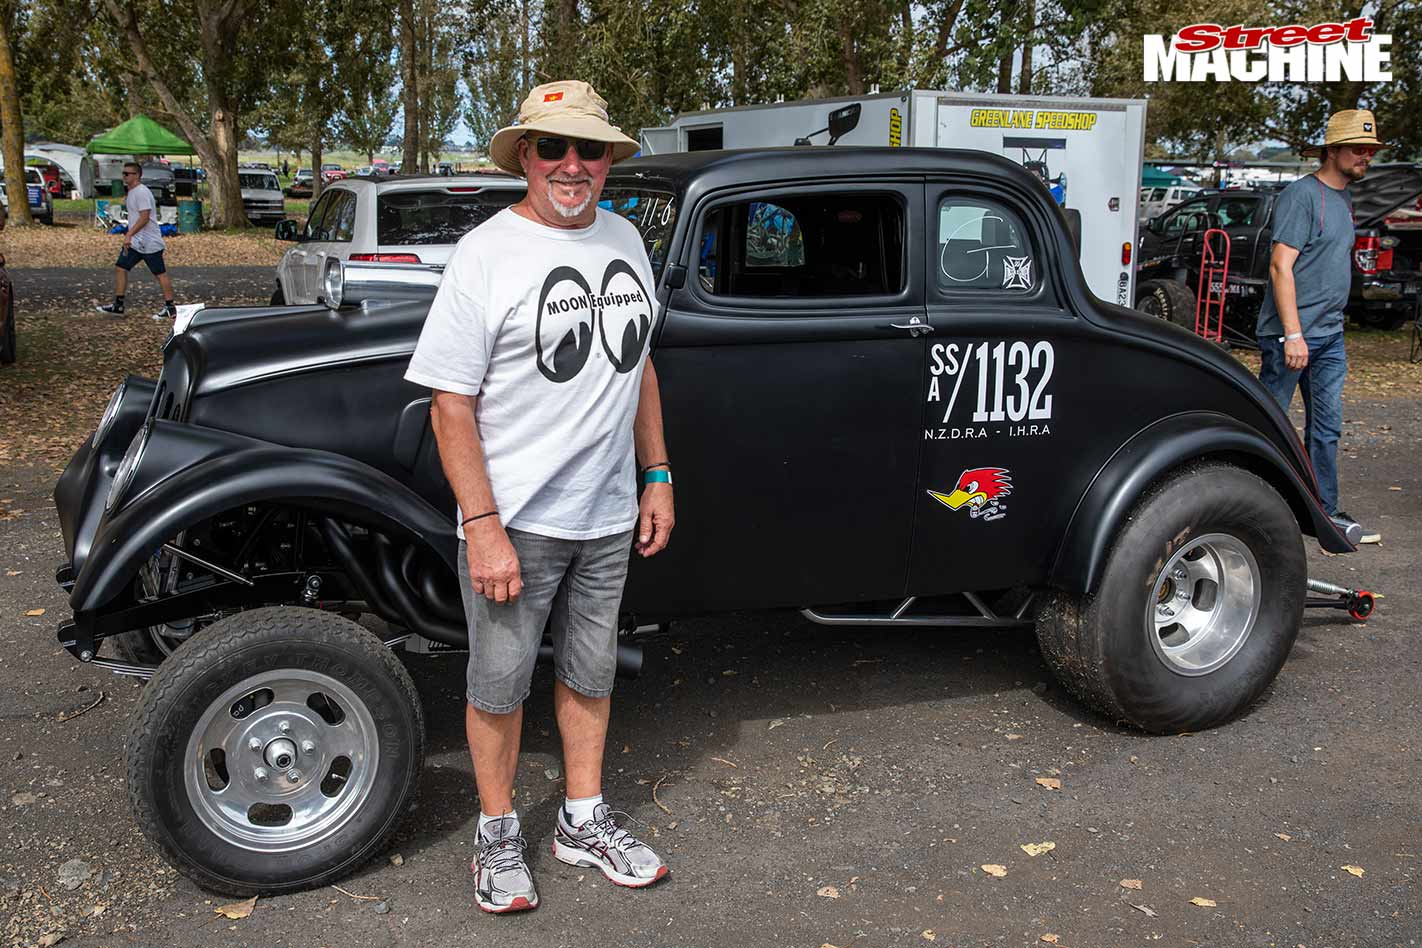 Max Turner's 1933 Willys